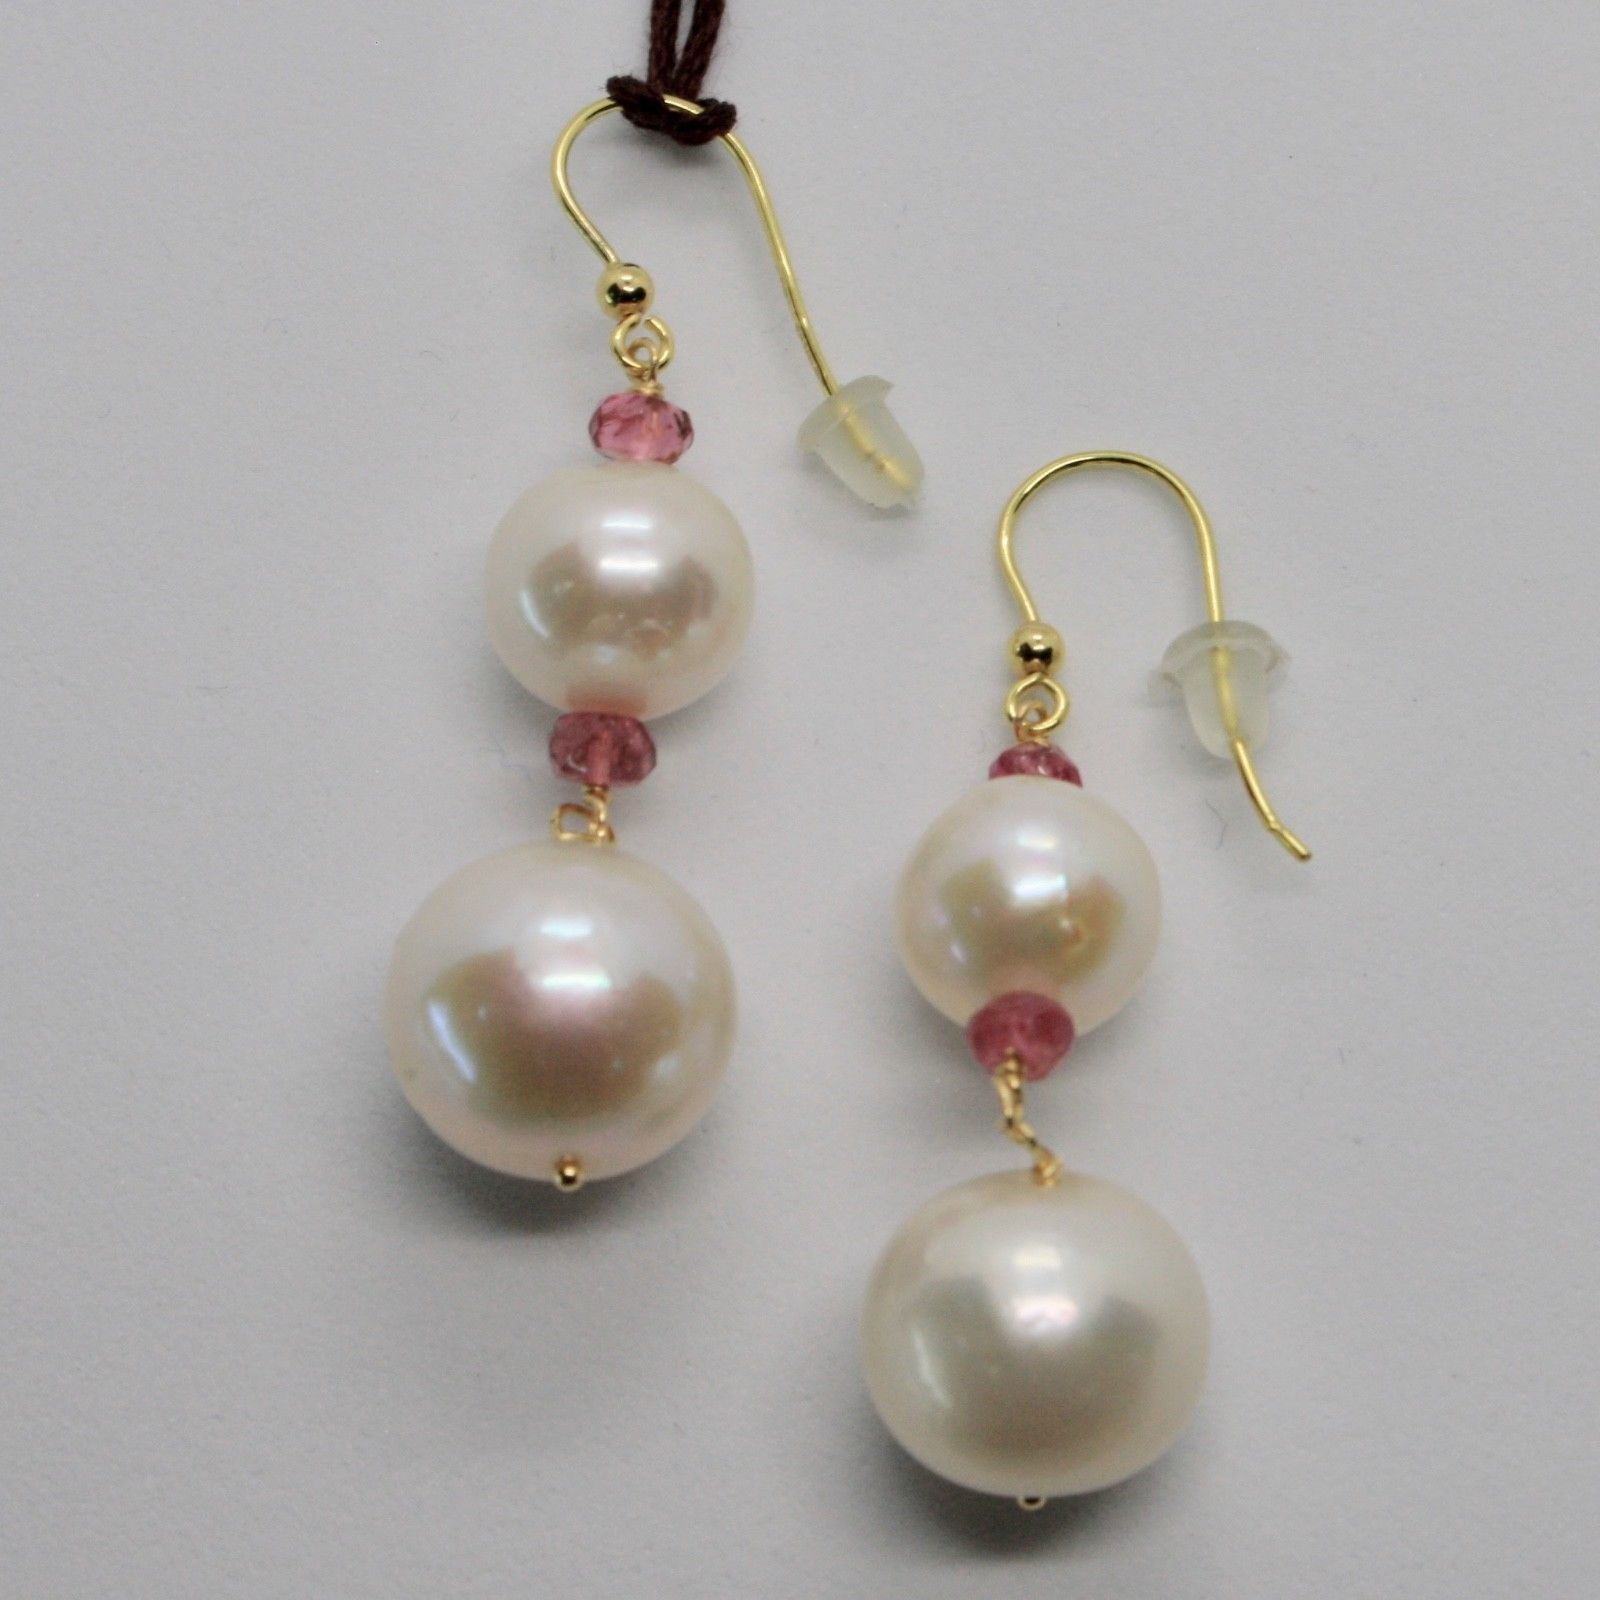 YELLOW GOLD EARRINGS 18KT 750 PEARLS FRESH WATER TOURMALINE PINK MADE IN ITALY